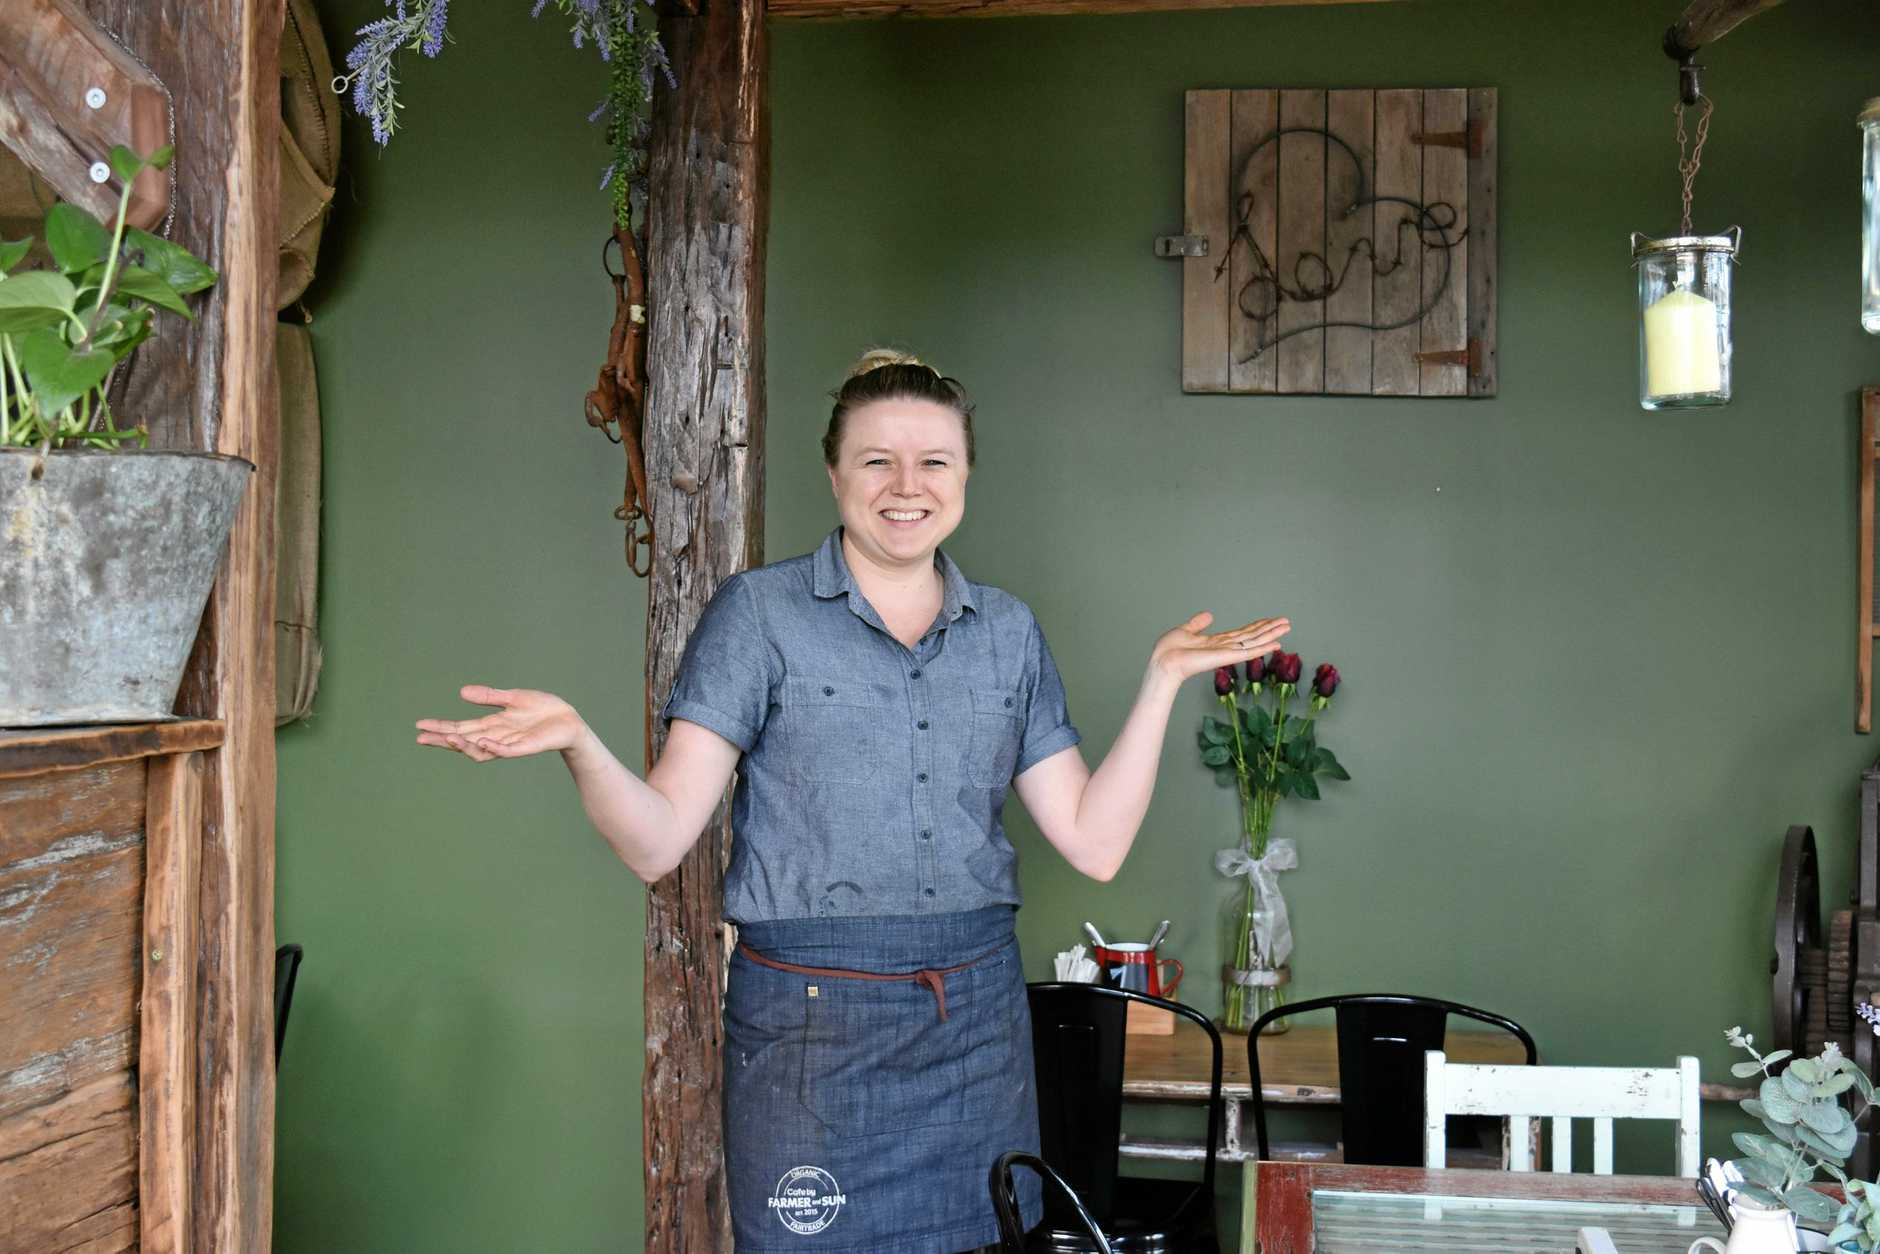 Sharla Watson in the new, renovated Farmer and Sun Cafe, which offers more space and an eclectic, rustic, vintage vibed decor.